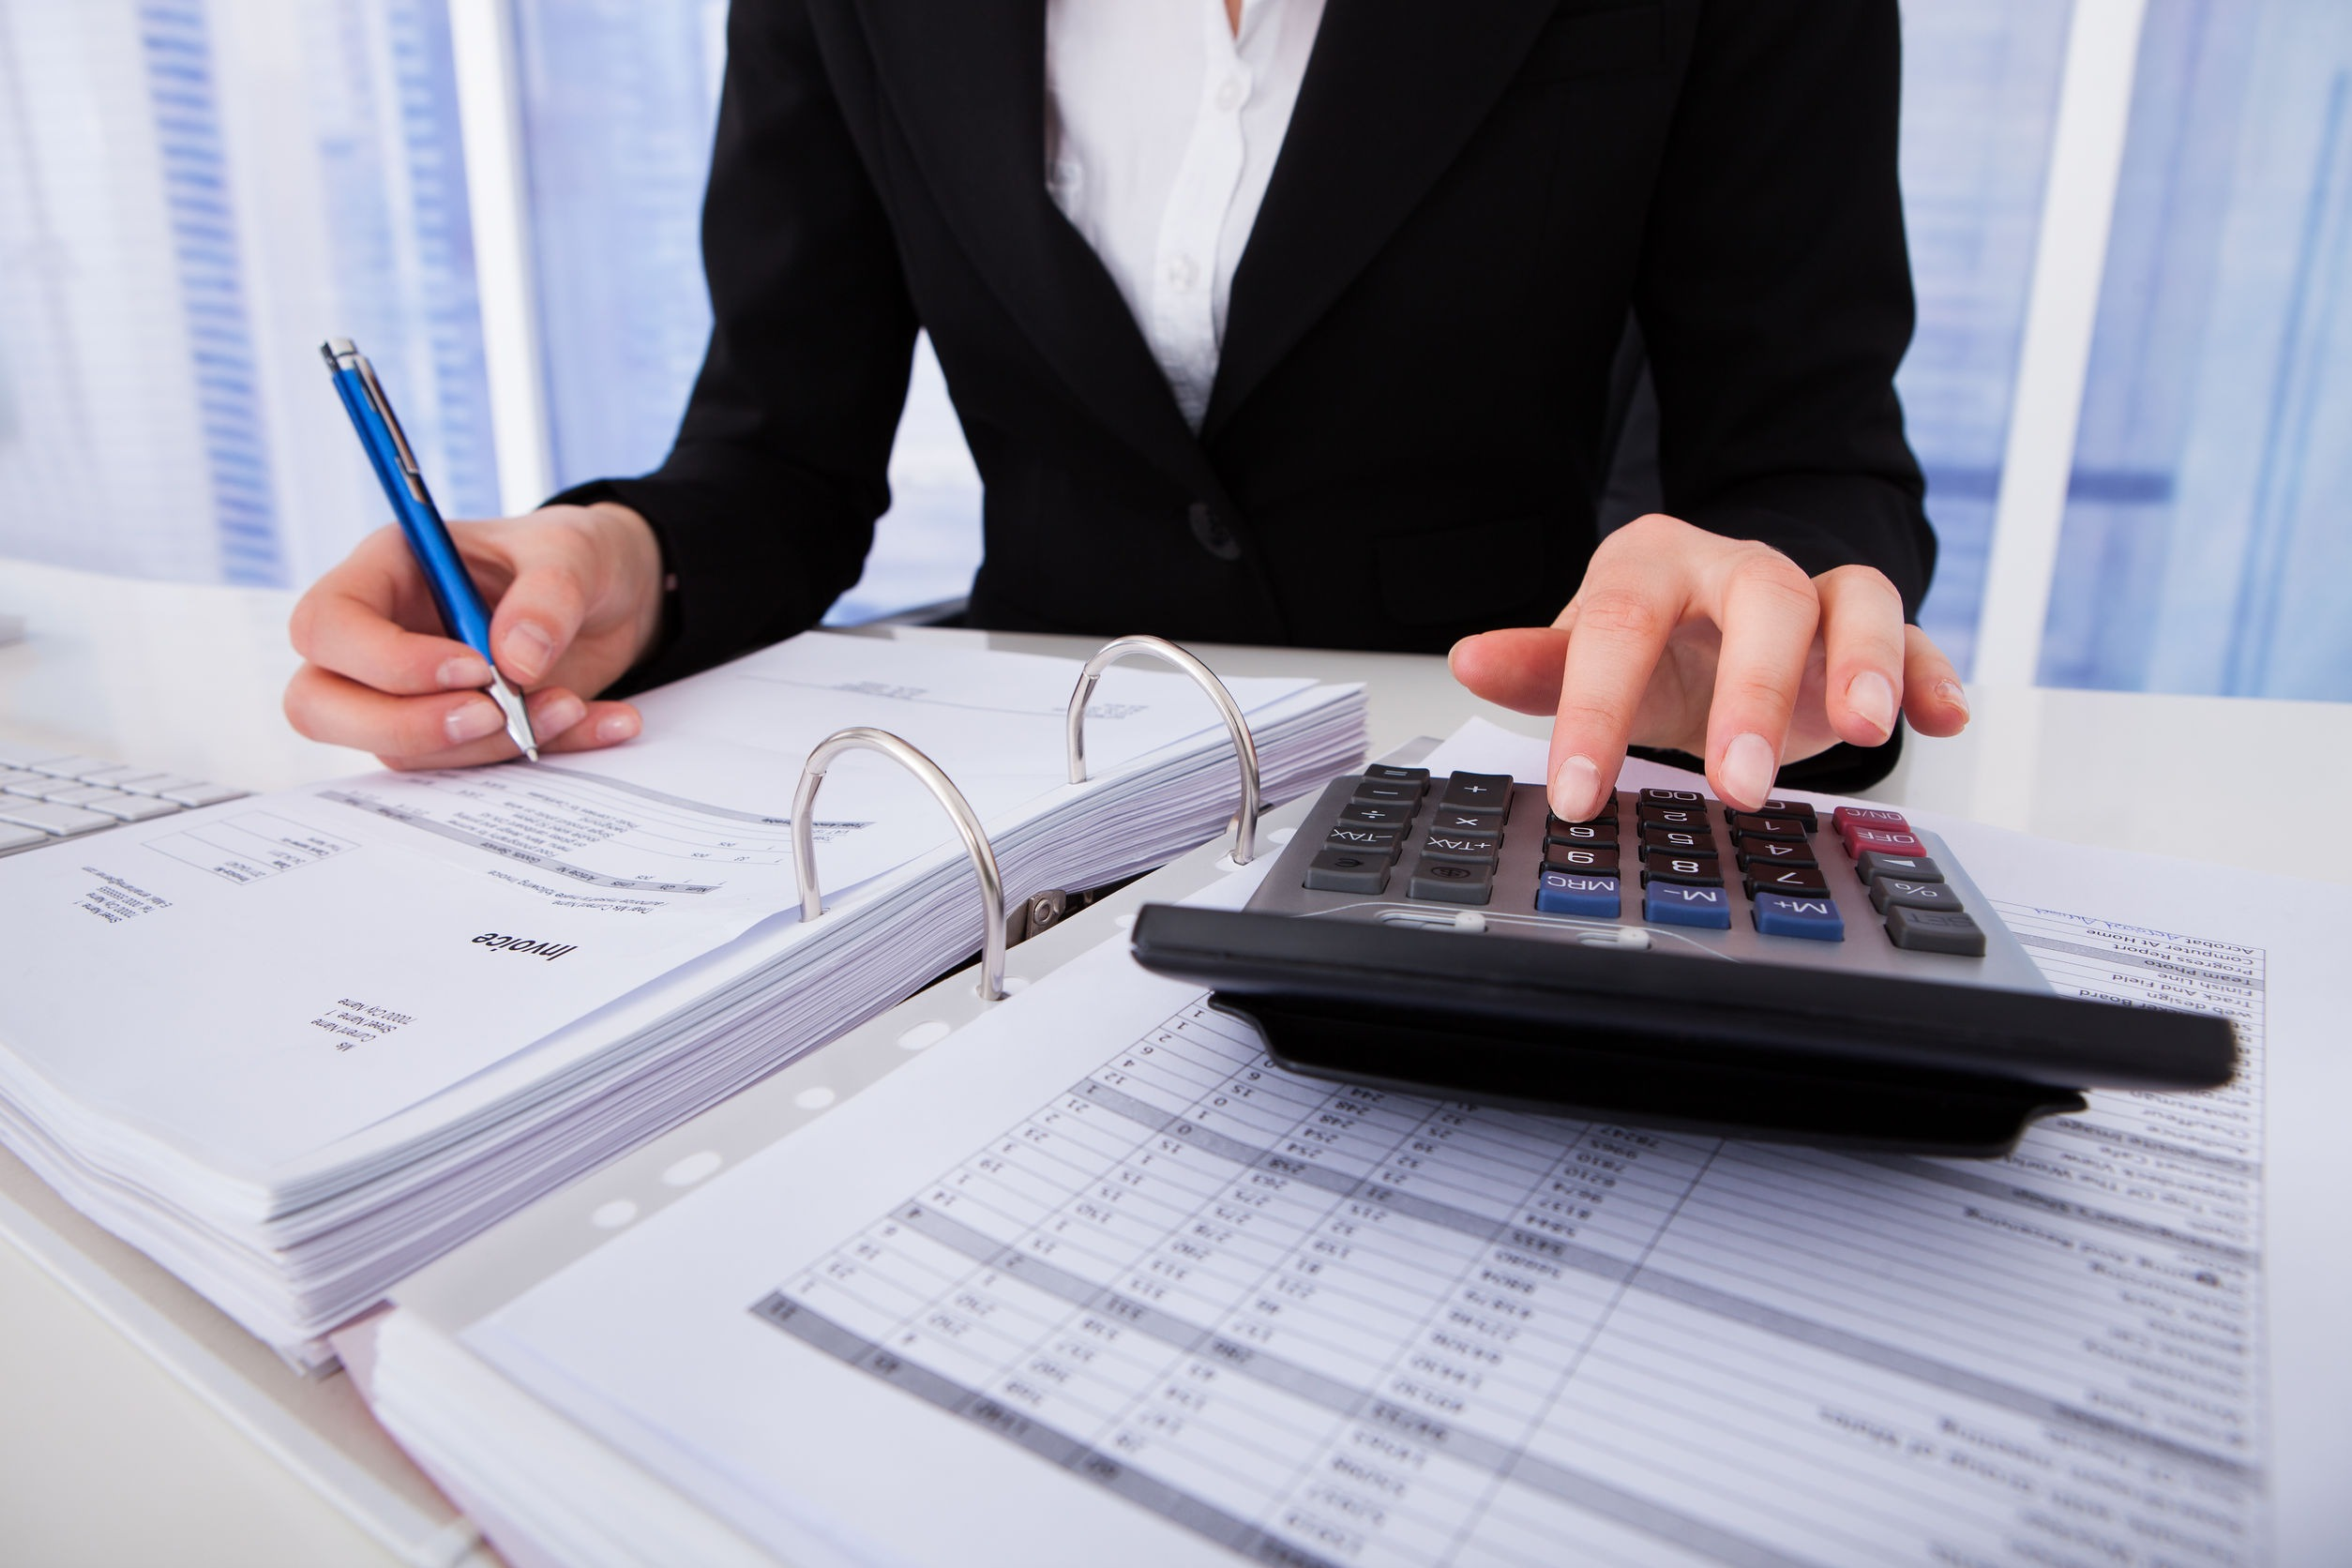 Bookkeeping Accountant with calculator